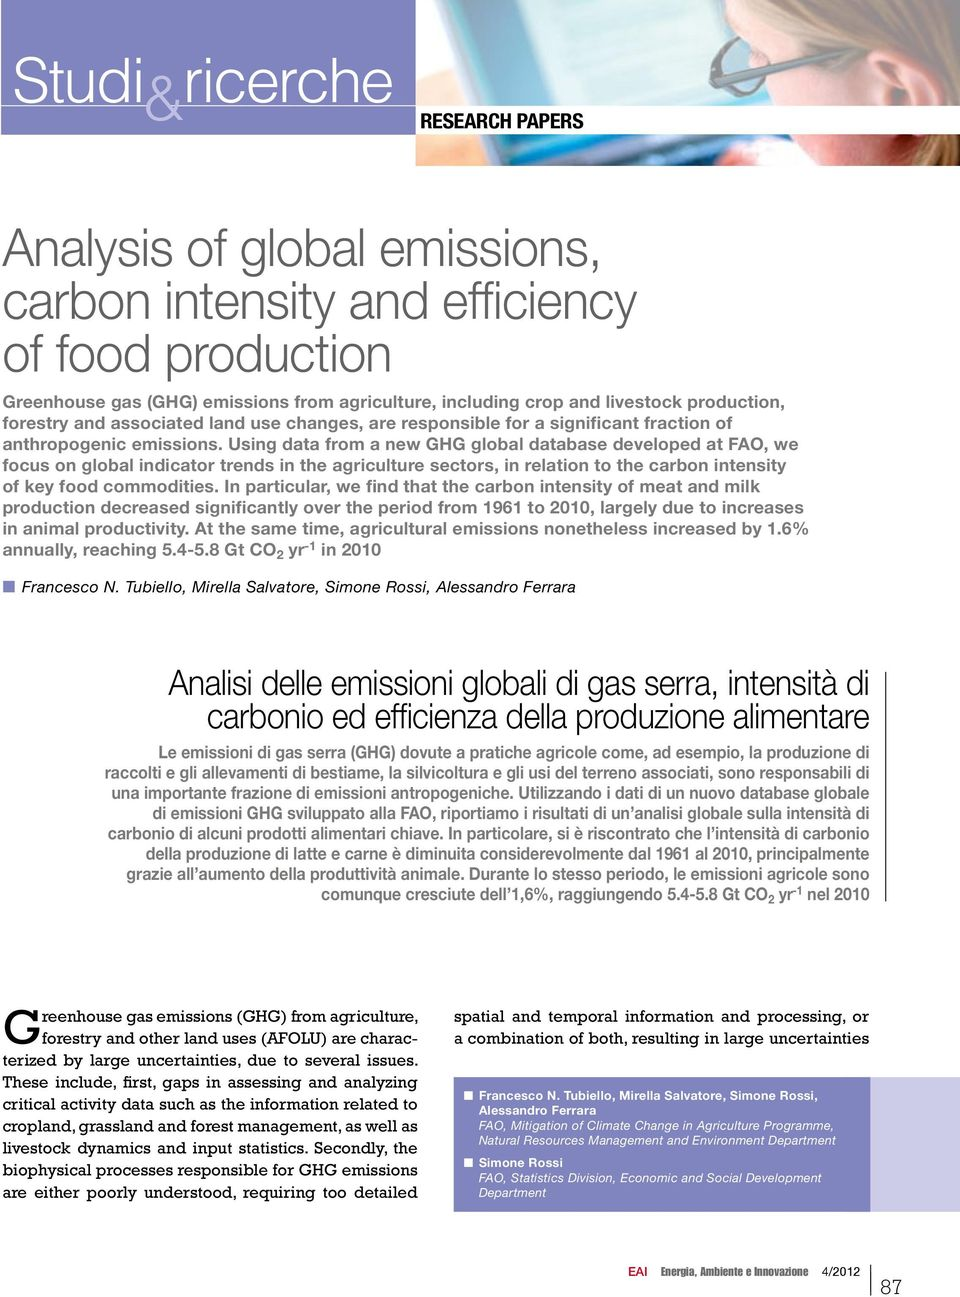 Using data from a new GHG global database developed at FAO, we focus on global indicator trends in the agriculture sectors, in relation to the carbon intensity of key food commodities.